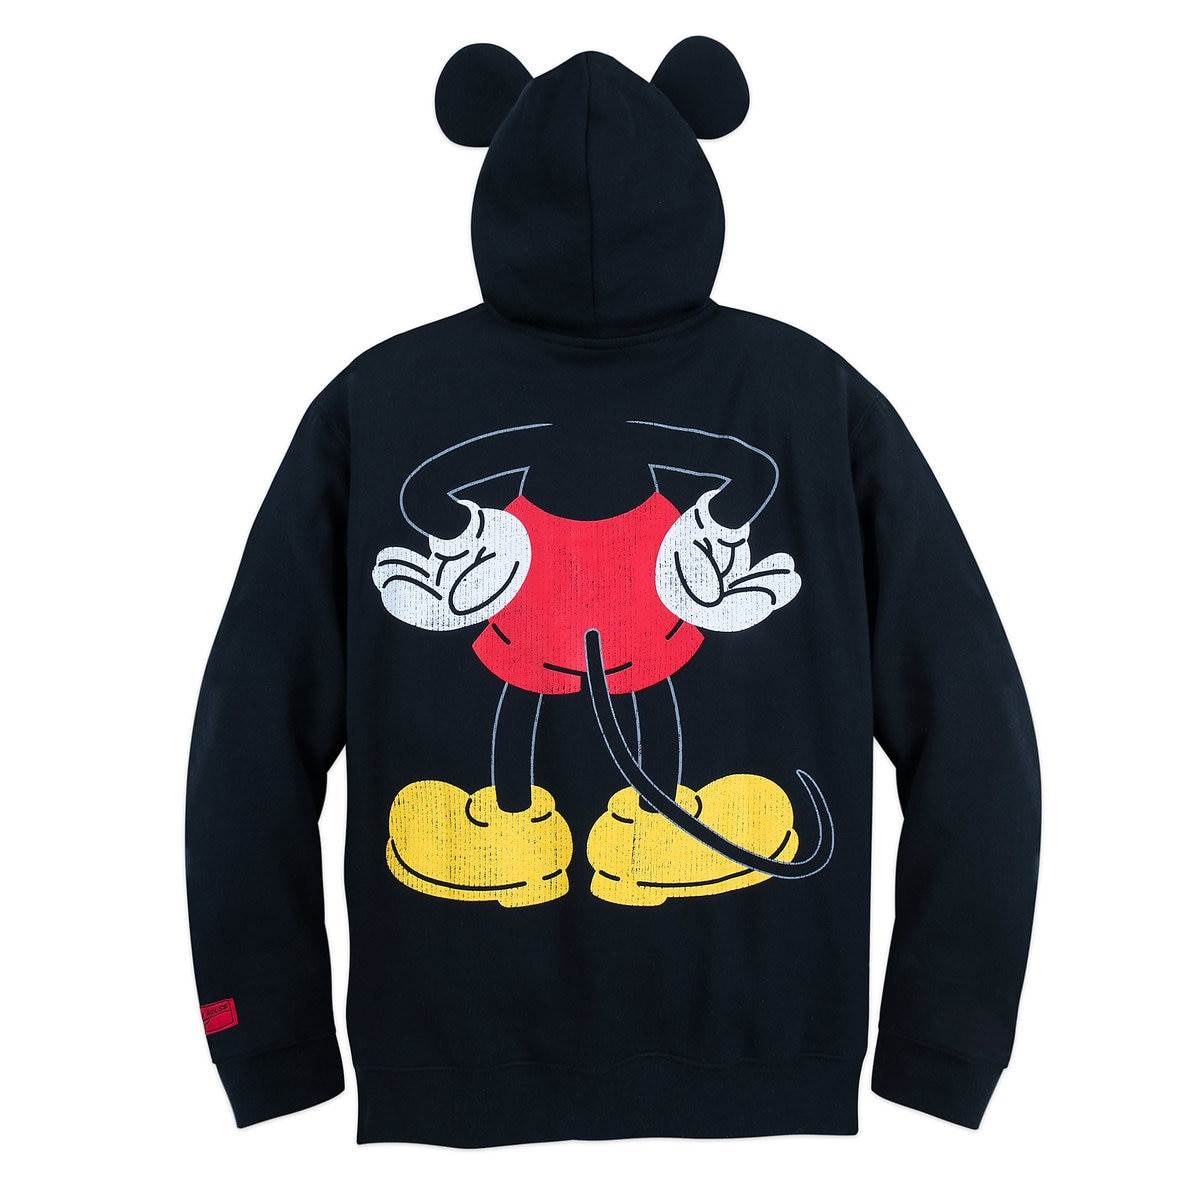 aeaf9ecc Product Image of I Am Mickey Mouse Pullover Hoodie for Men # 2